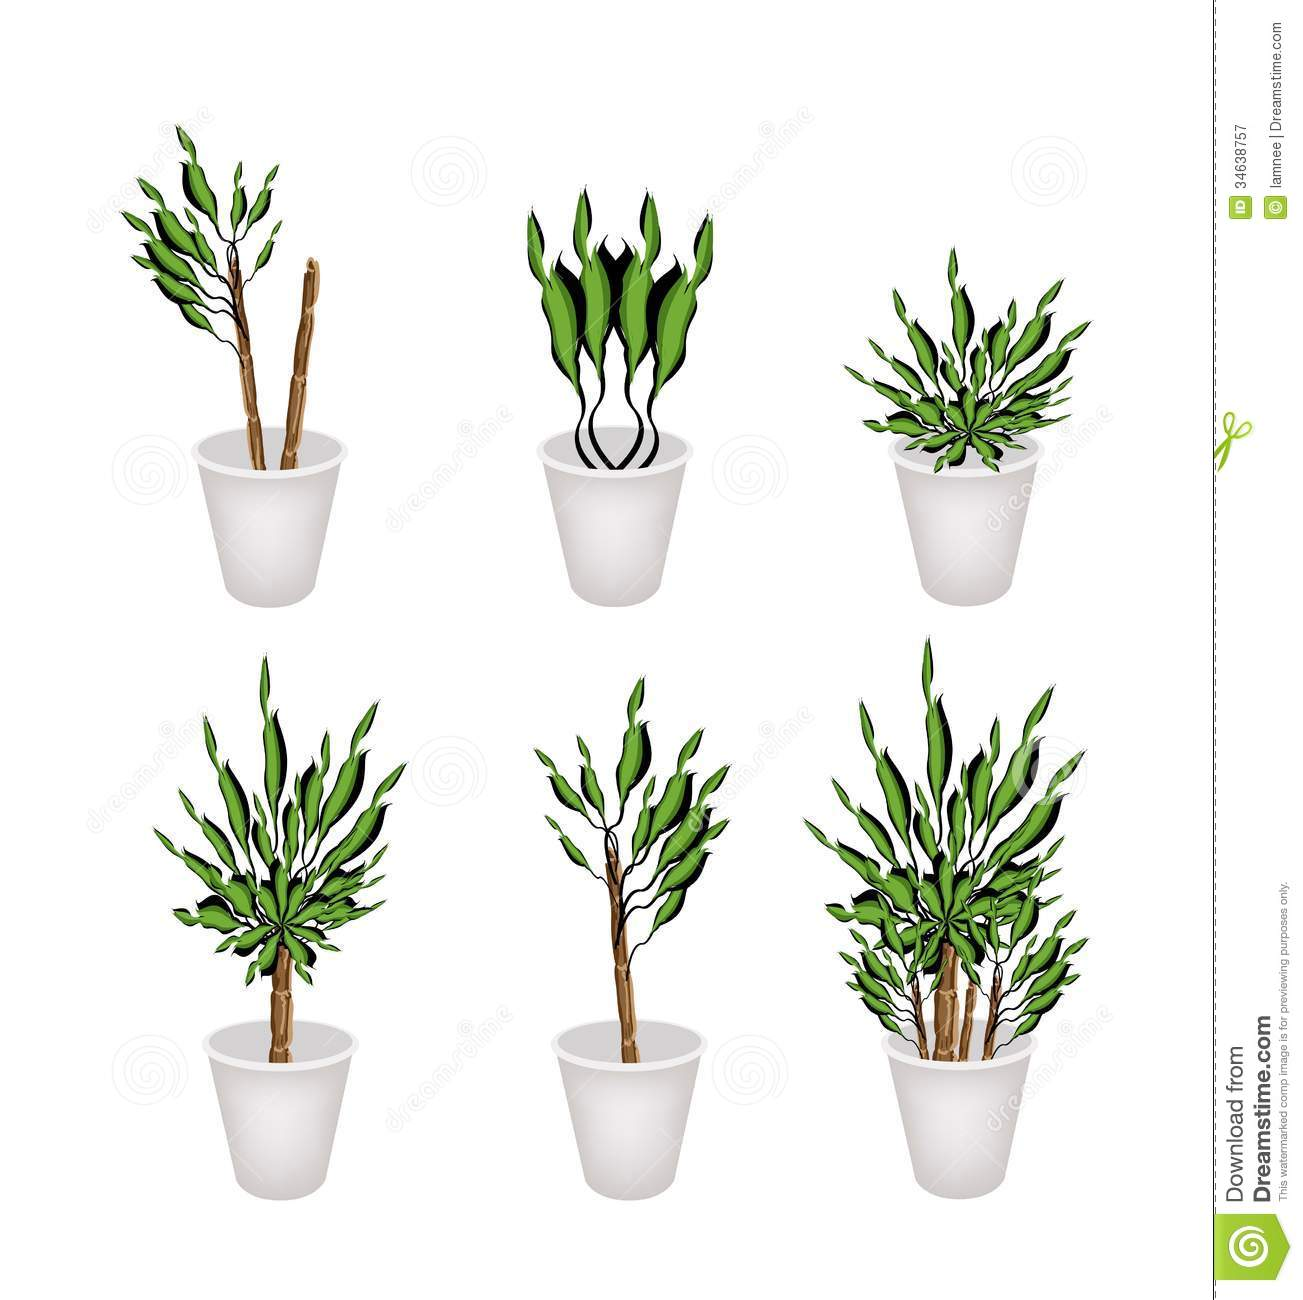 arbre de yucca ou usine de dracaena dans un pot de fleur image stock image 34638757. Black Bedroom Furniture Sets. Home Design Ideas